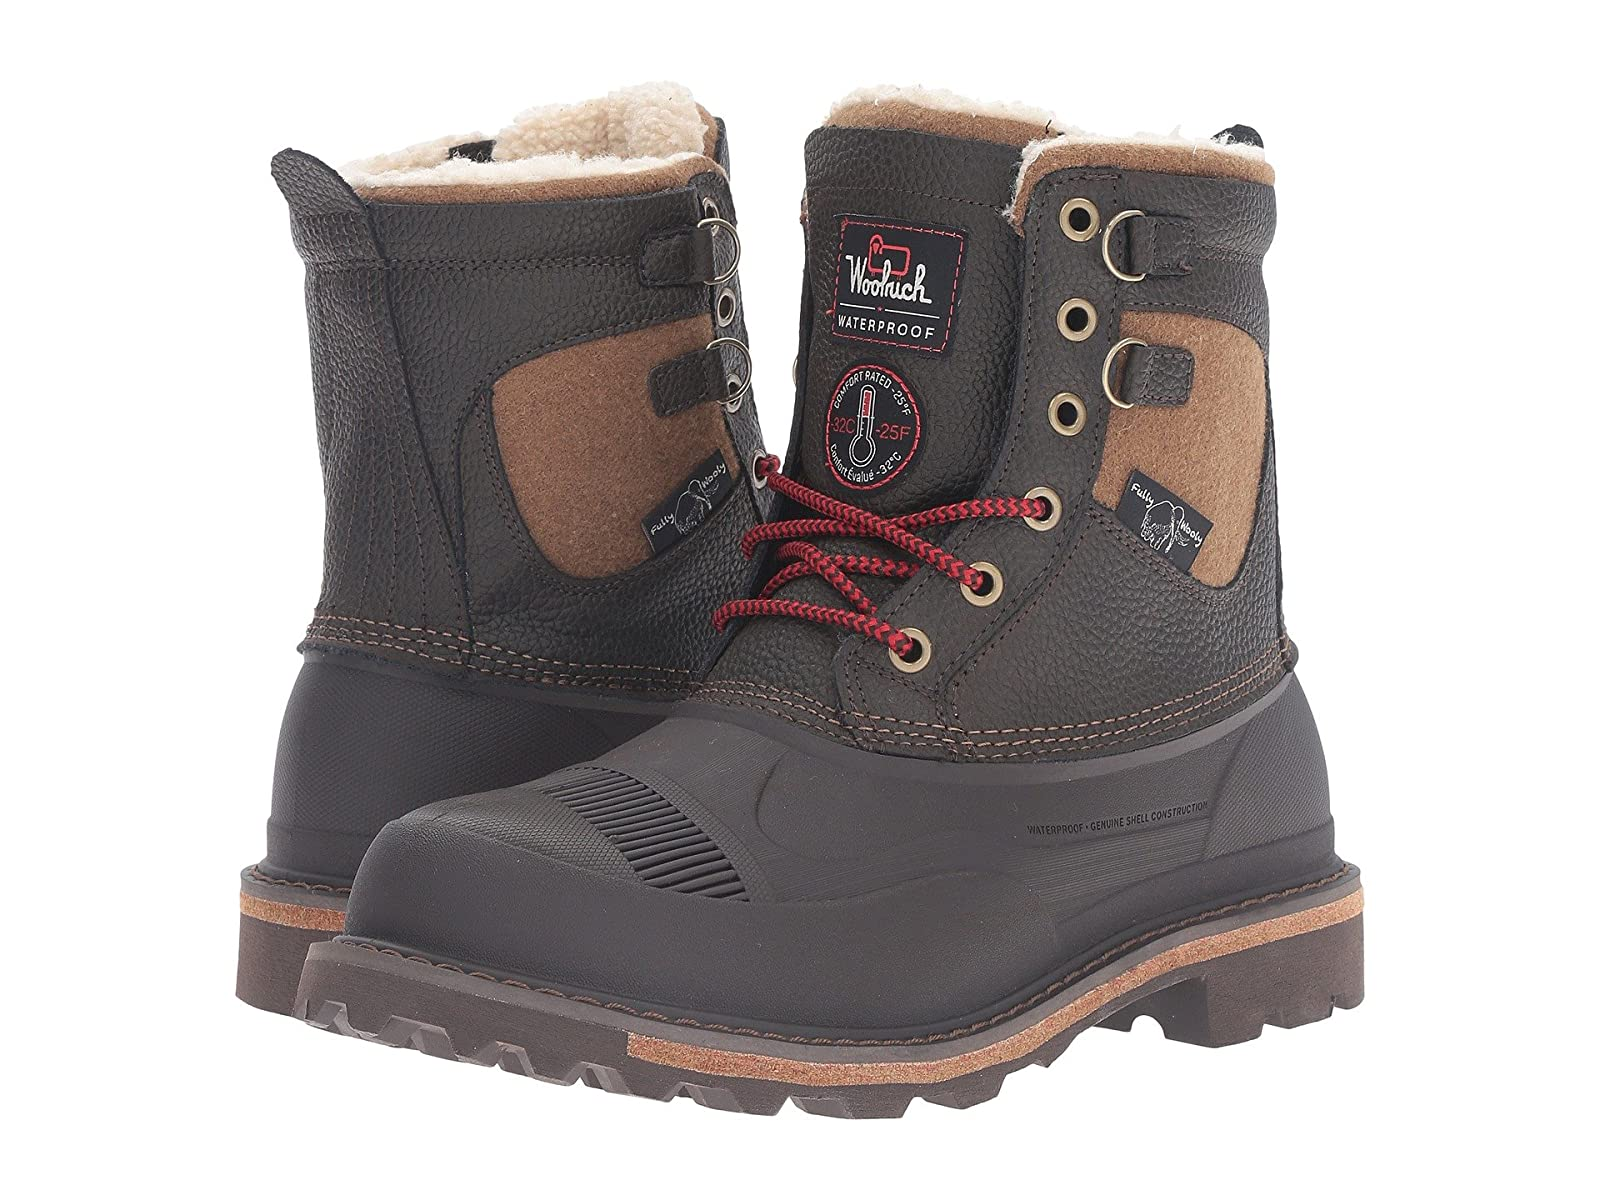 Woolrich Fully Wooly LaceCheap and distinctive eye-catching shoes